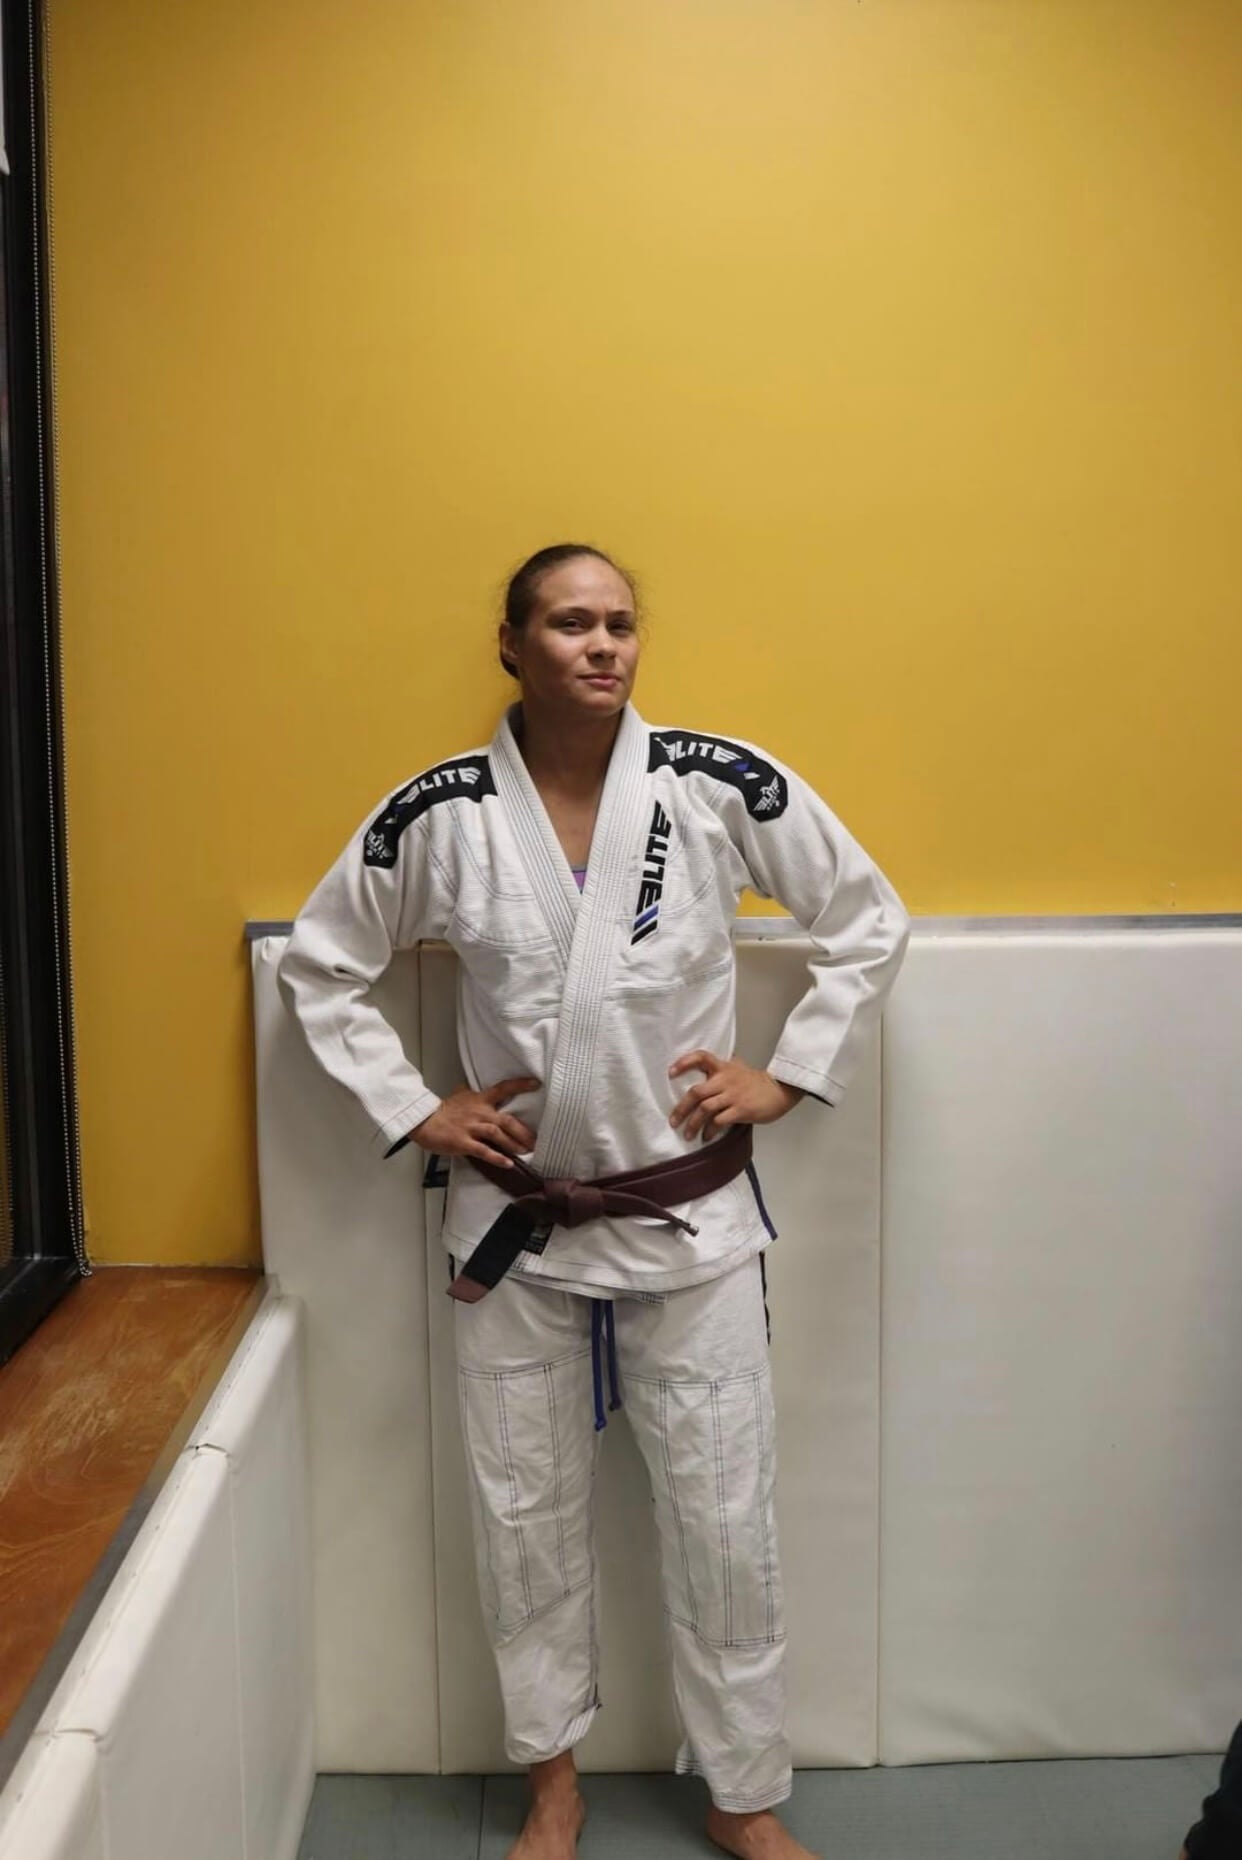 Elite sports Team Elite Bjj Yanelisa Perez image6